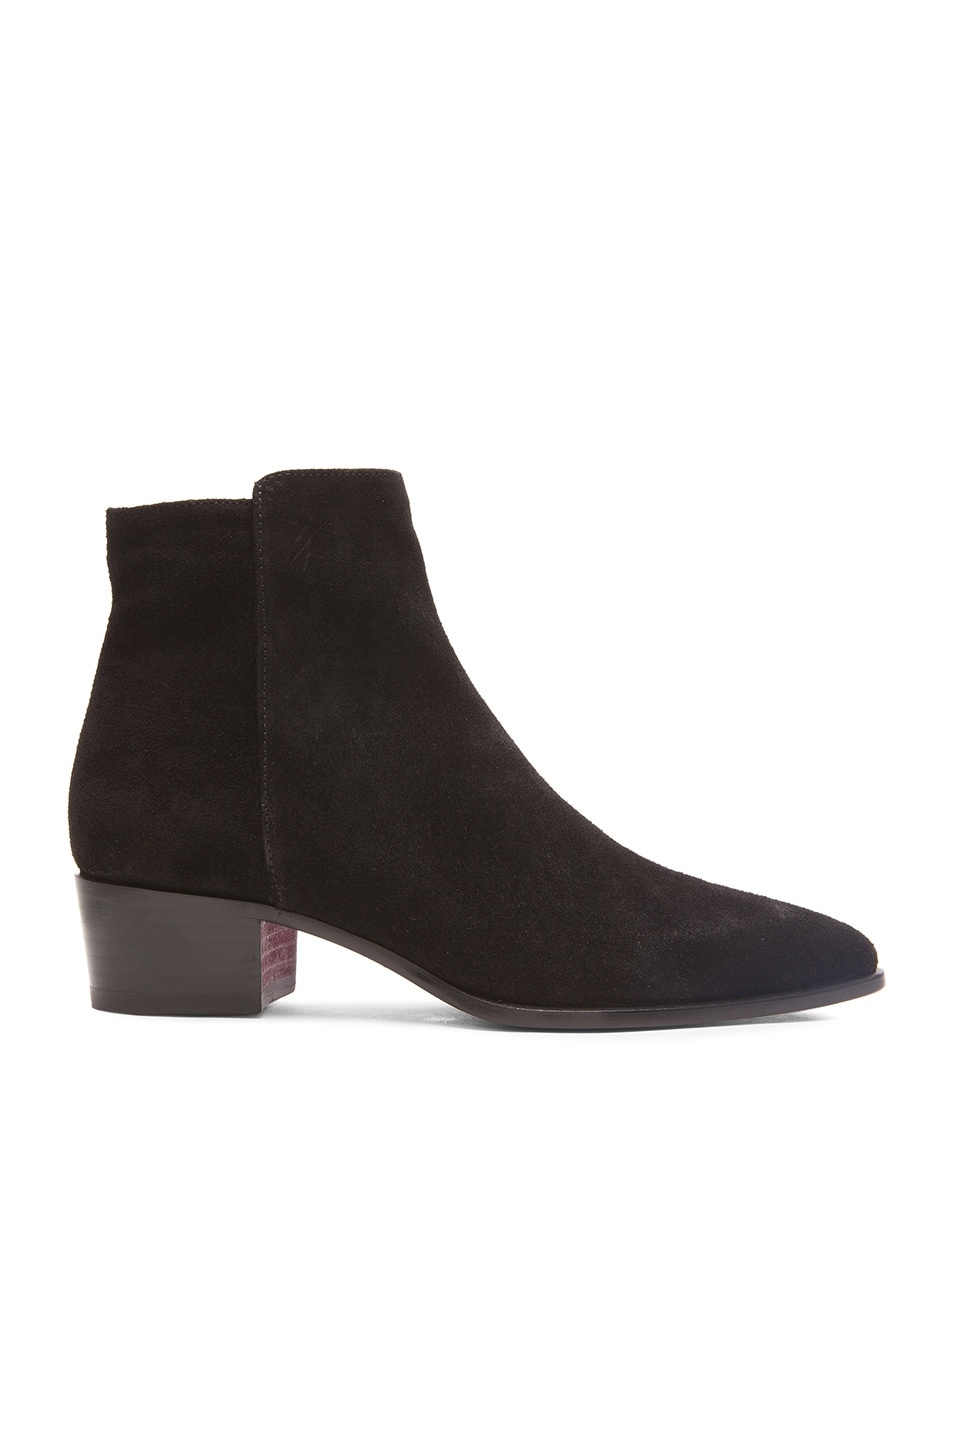 barbara bui suede low boots in black fwrd